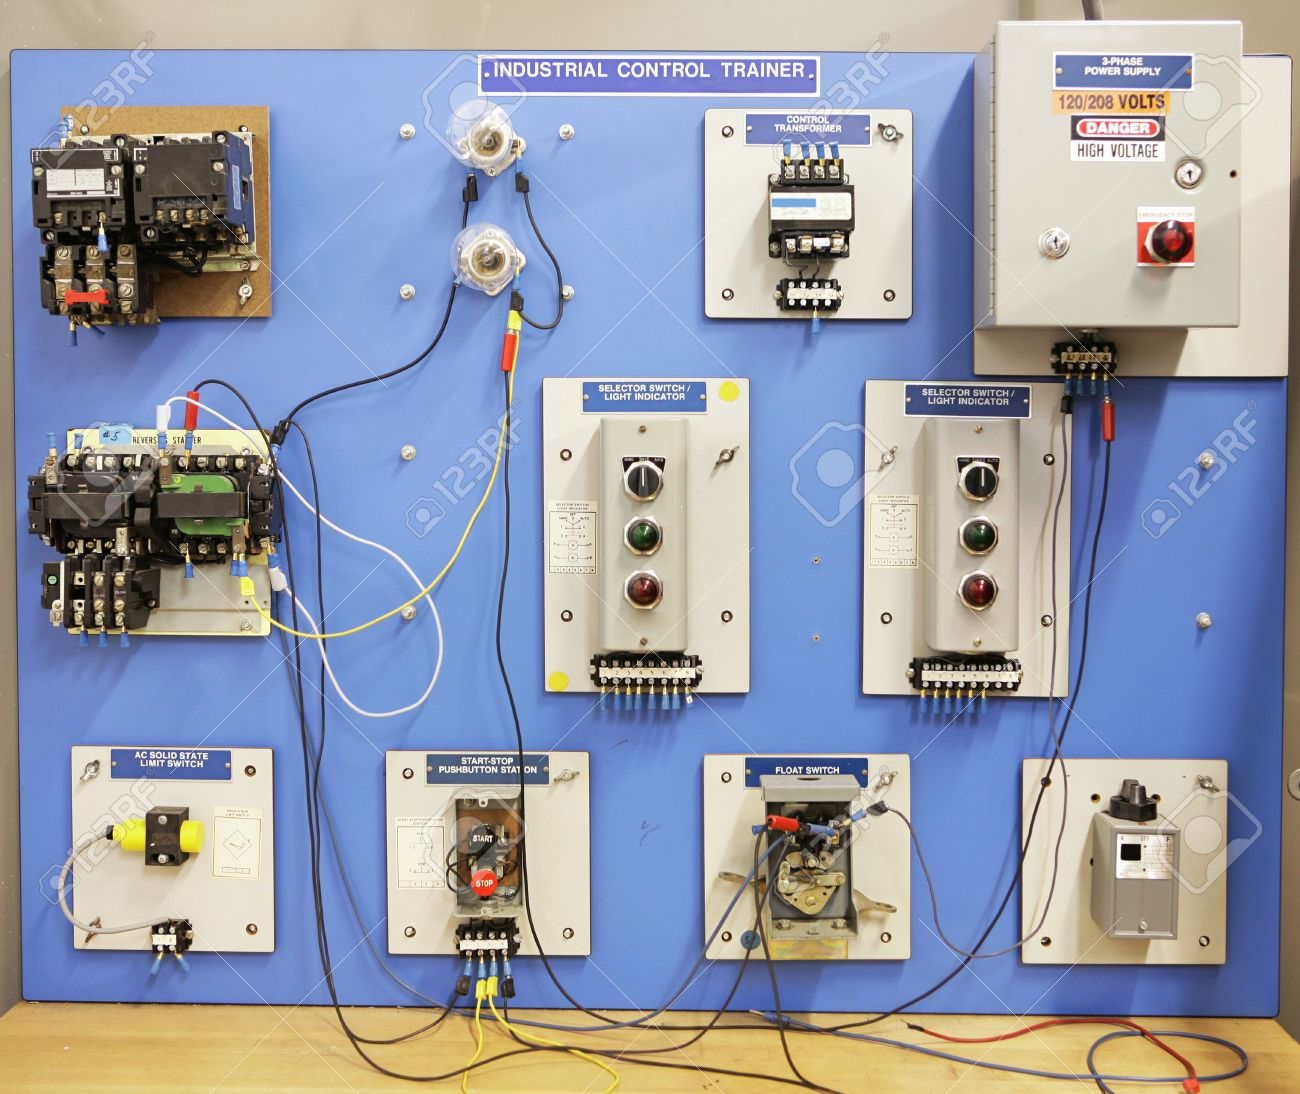 St 4231  Electrical Panel Board Wiring Training Schematic Wiring